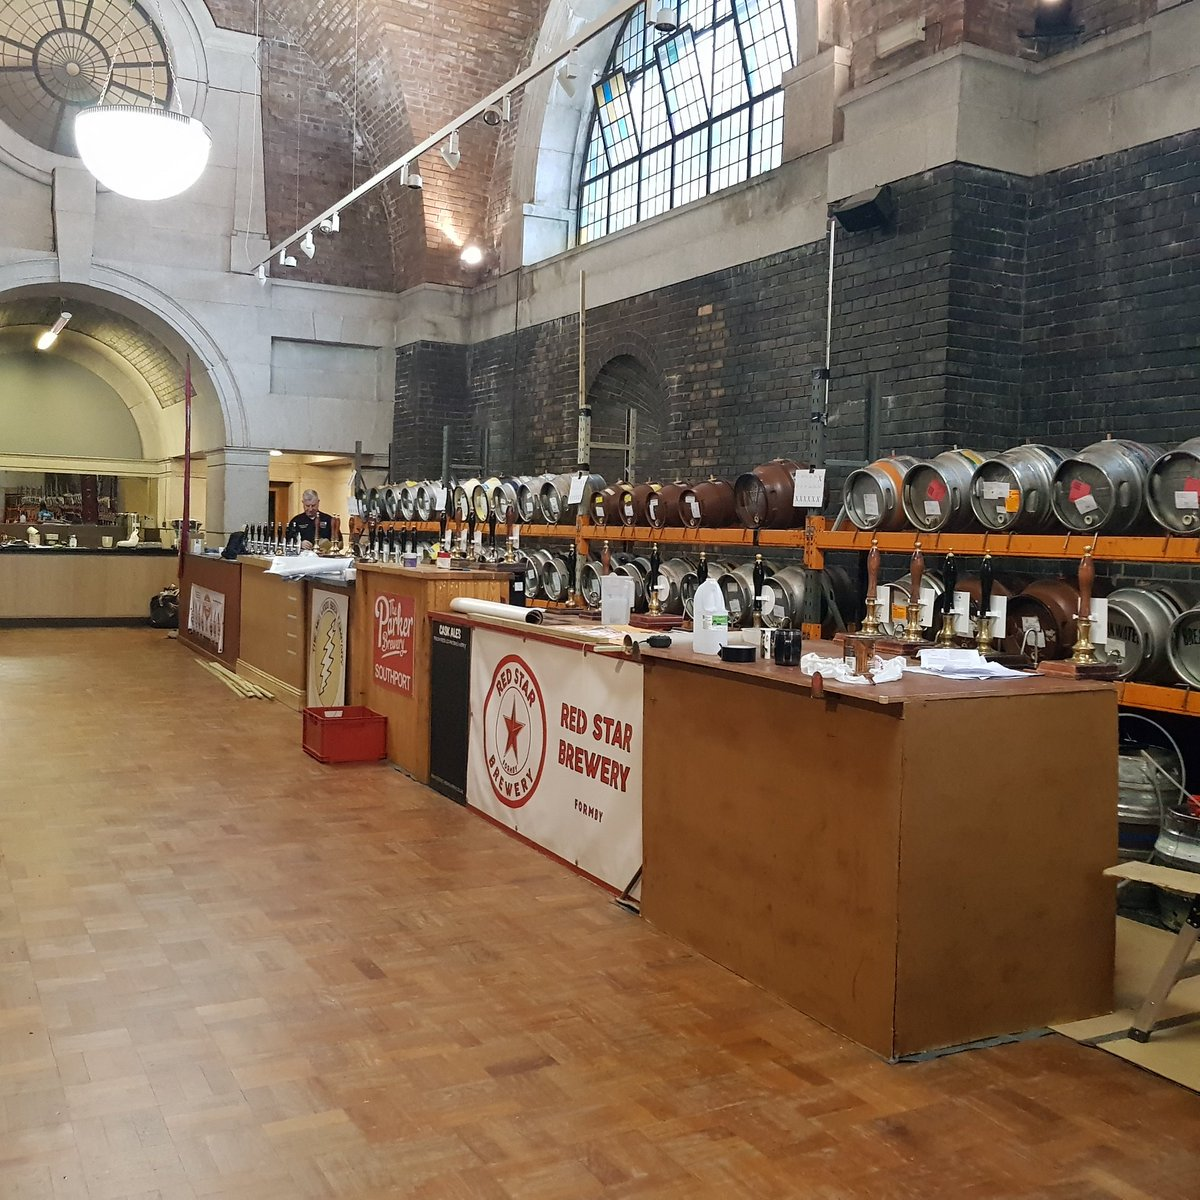 test Twitter Media - The Liverpool Beer Festival opens its doors today! Are you visiting the Metropolitan Cathedral Crypt to sample some of the 200+ beers, ciders and perries available? 🍻 @lbfCAMRA  Check out more information on their website 👉 https://t.co/ihKhBsFjbu @LiverpoolCAMRA https://t.co/H1SmC0KUkT